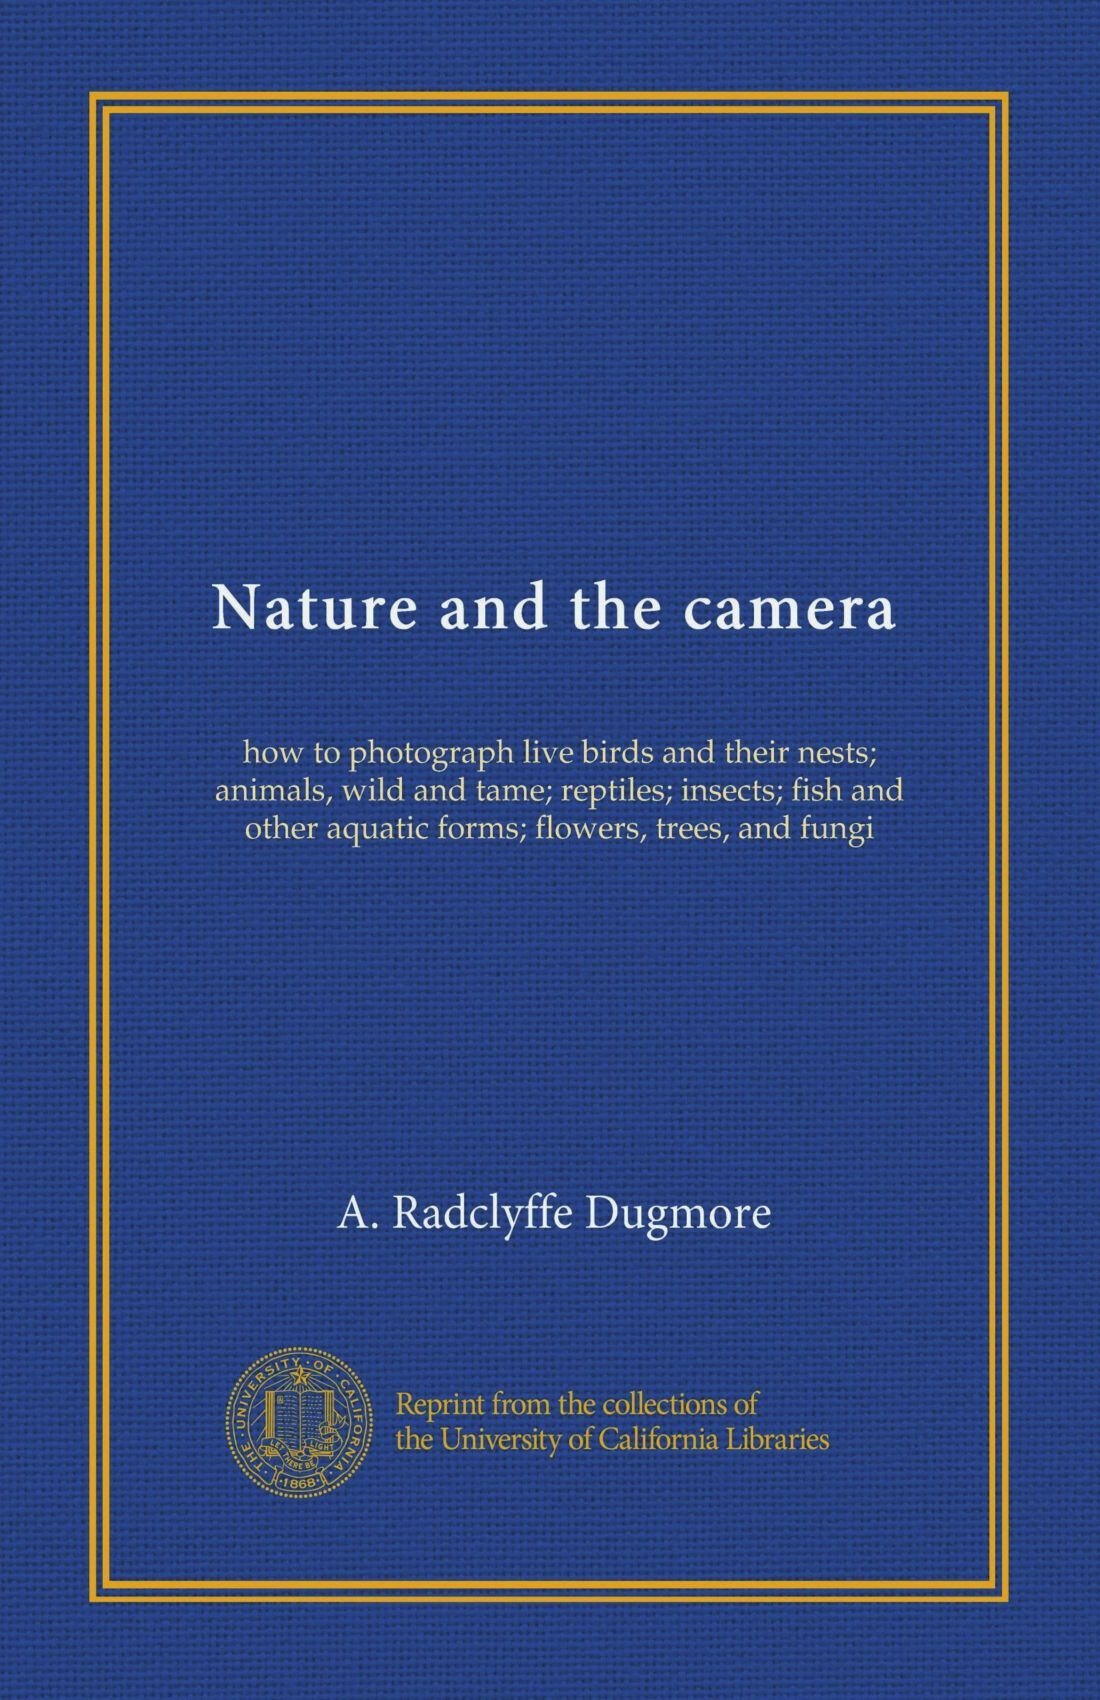 Nature and the camera: how to photograph live birds and their nests; animals, wild and tame; reptiles; insects; fish and other aquatic forms; flowers, trees, and fungi ebook